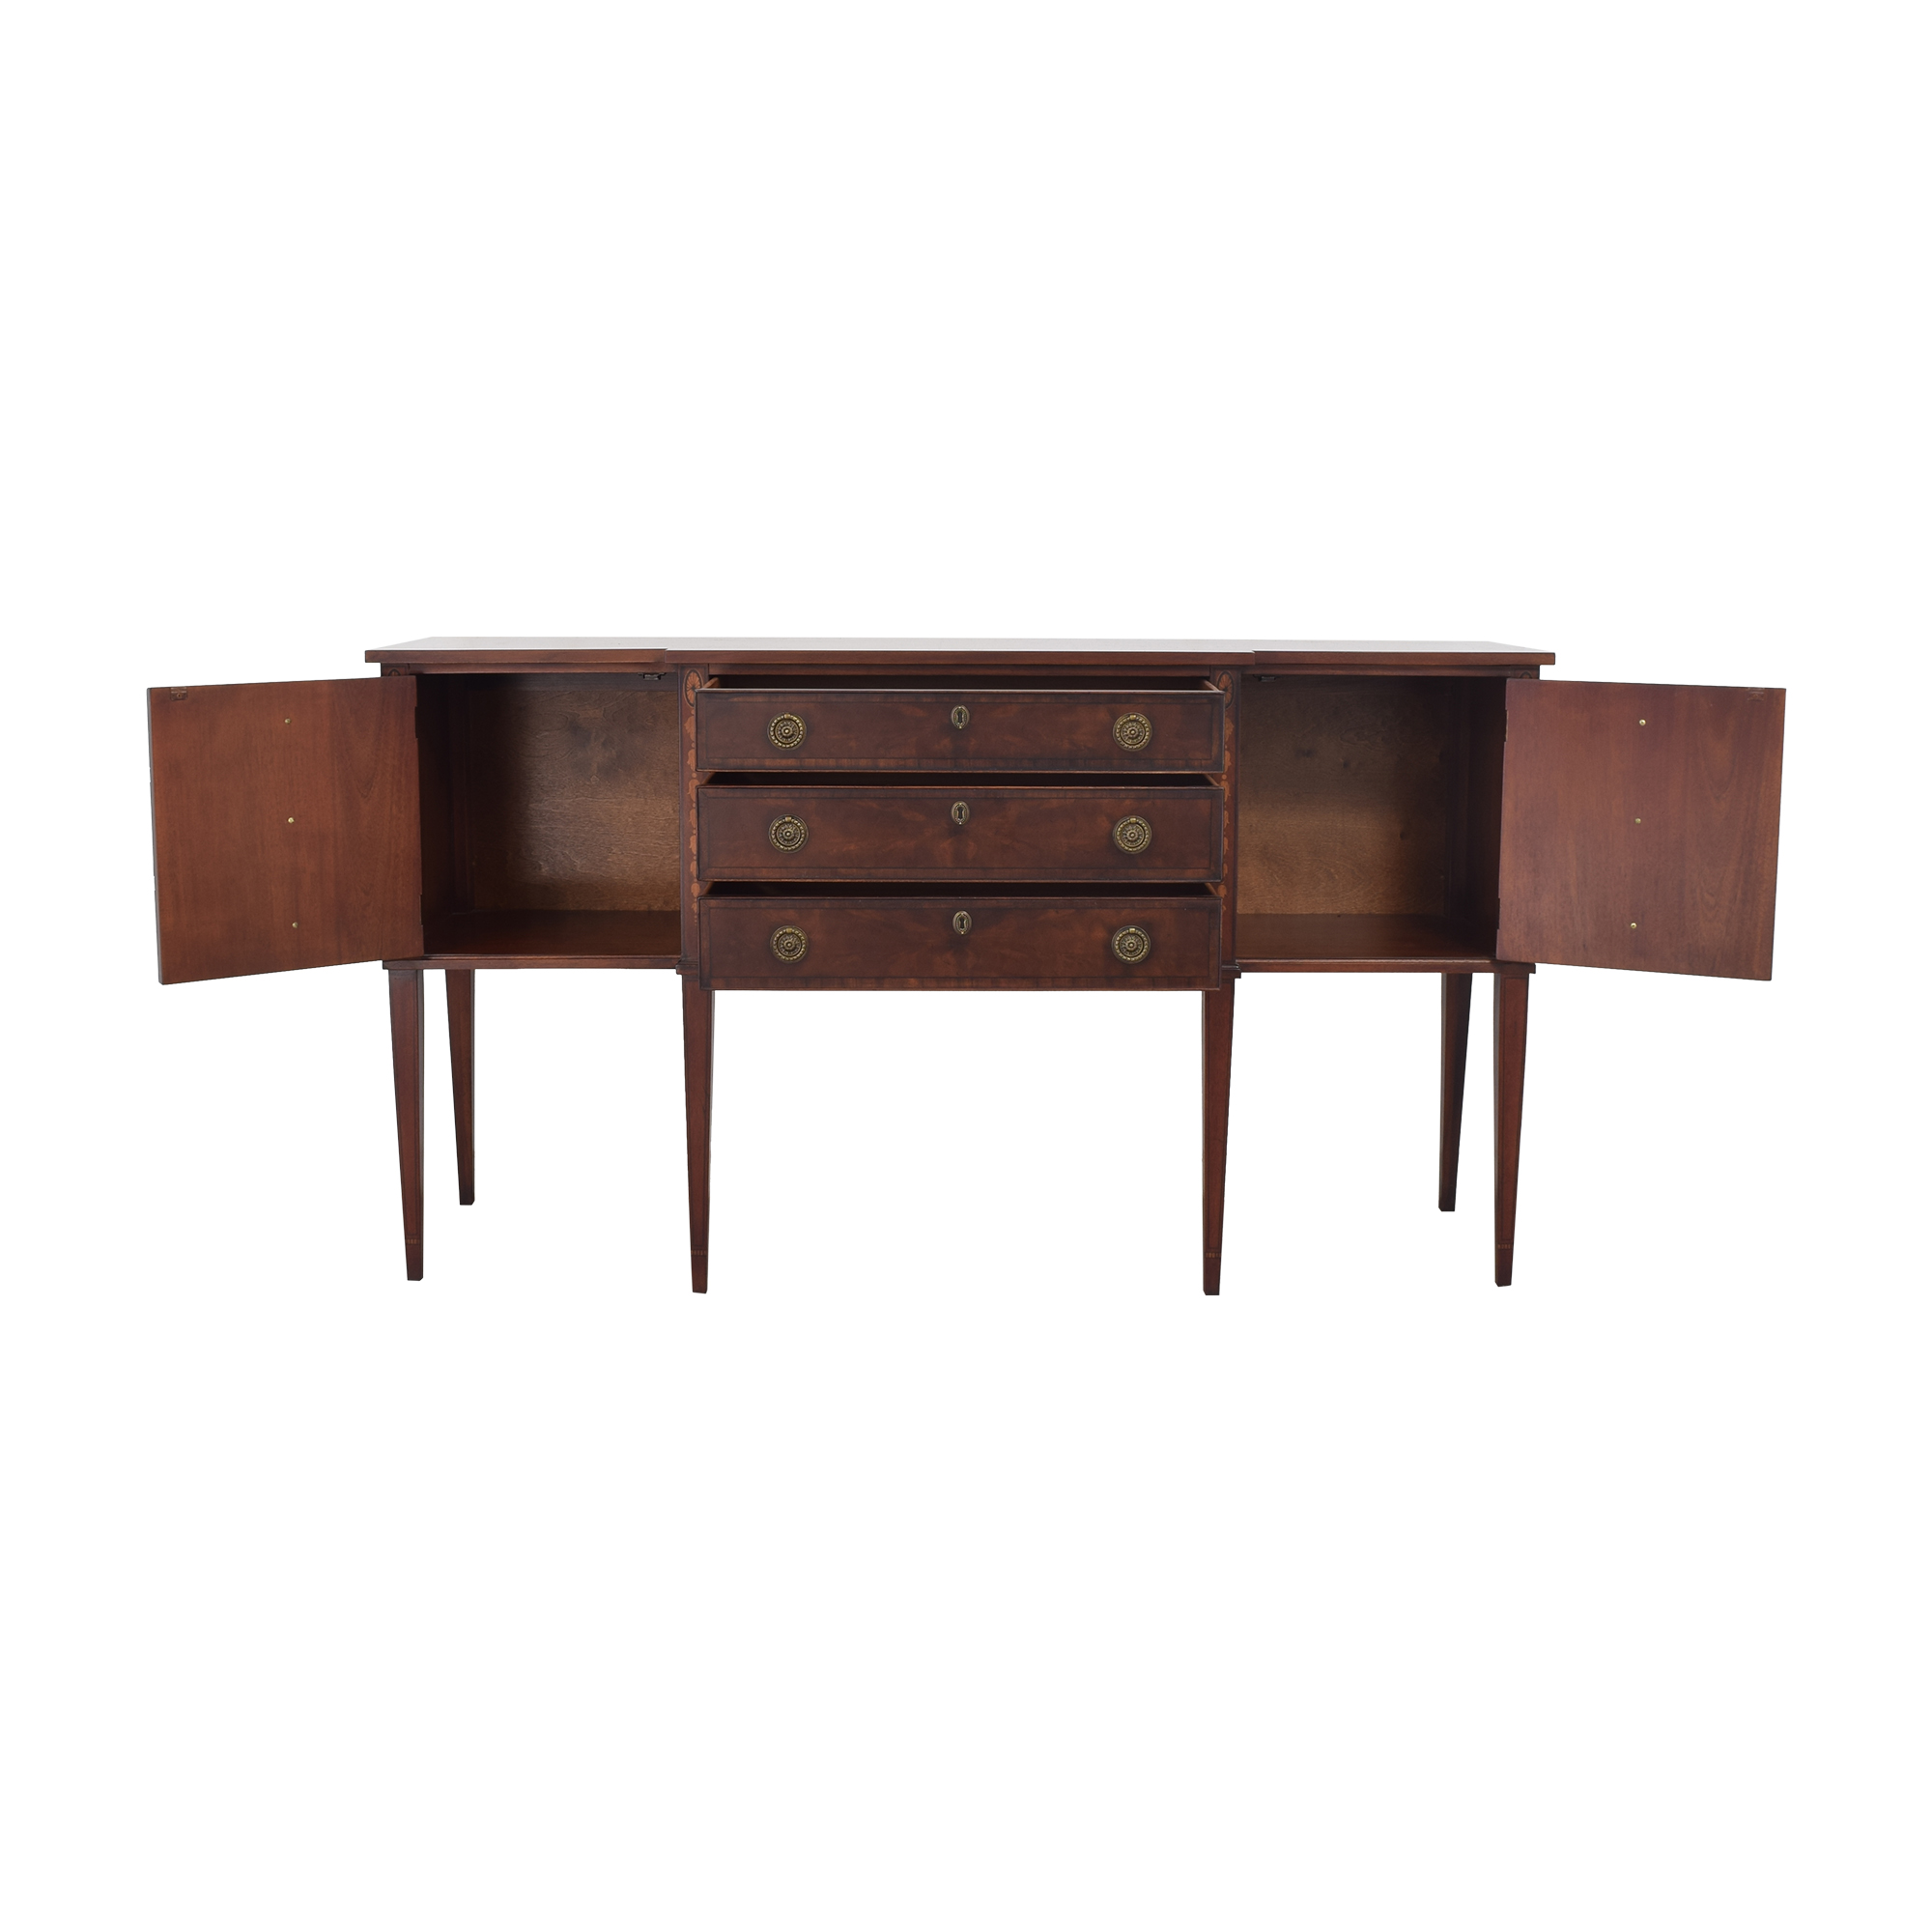 Henredon Furniture Buffet Sideboard sale